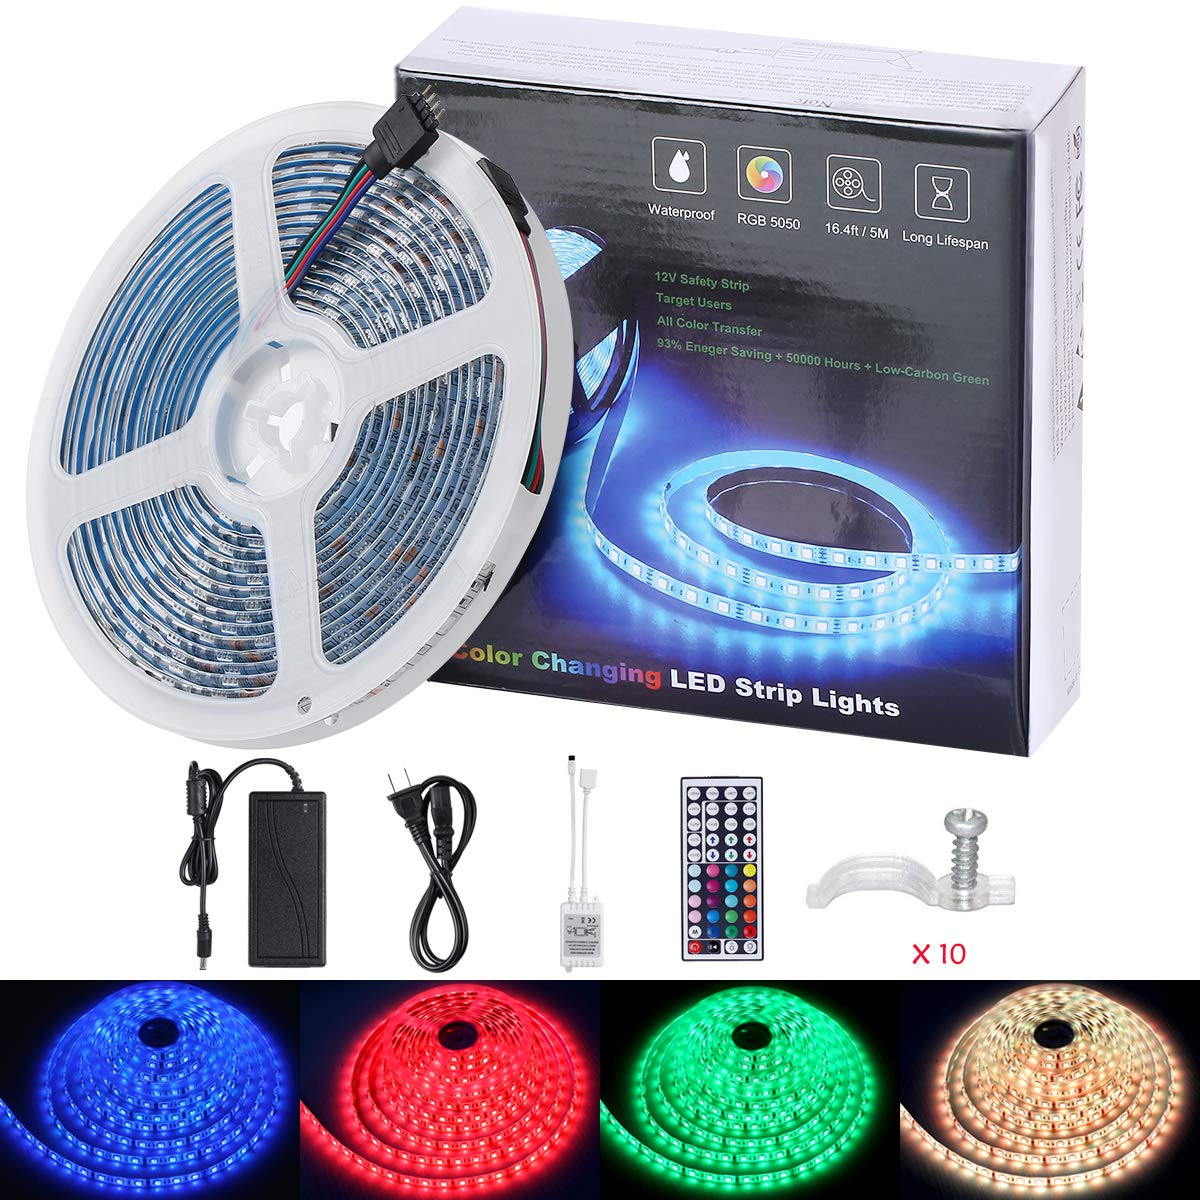 HengBO LED Strip Light, 16.4ft 5m Waterproof 300leds RGB 5050 Color Changing Rope Light with 44 Key Remote Control and Power Supply Bedroom Flexible Tape Lights for Home Decoration